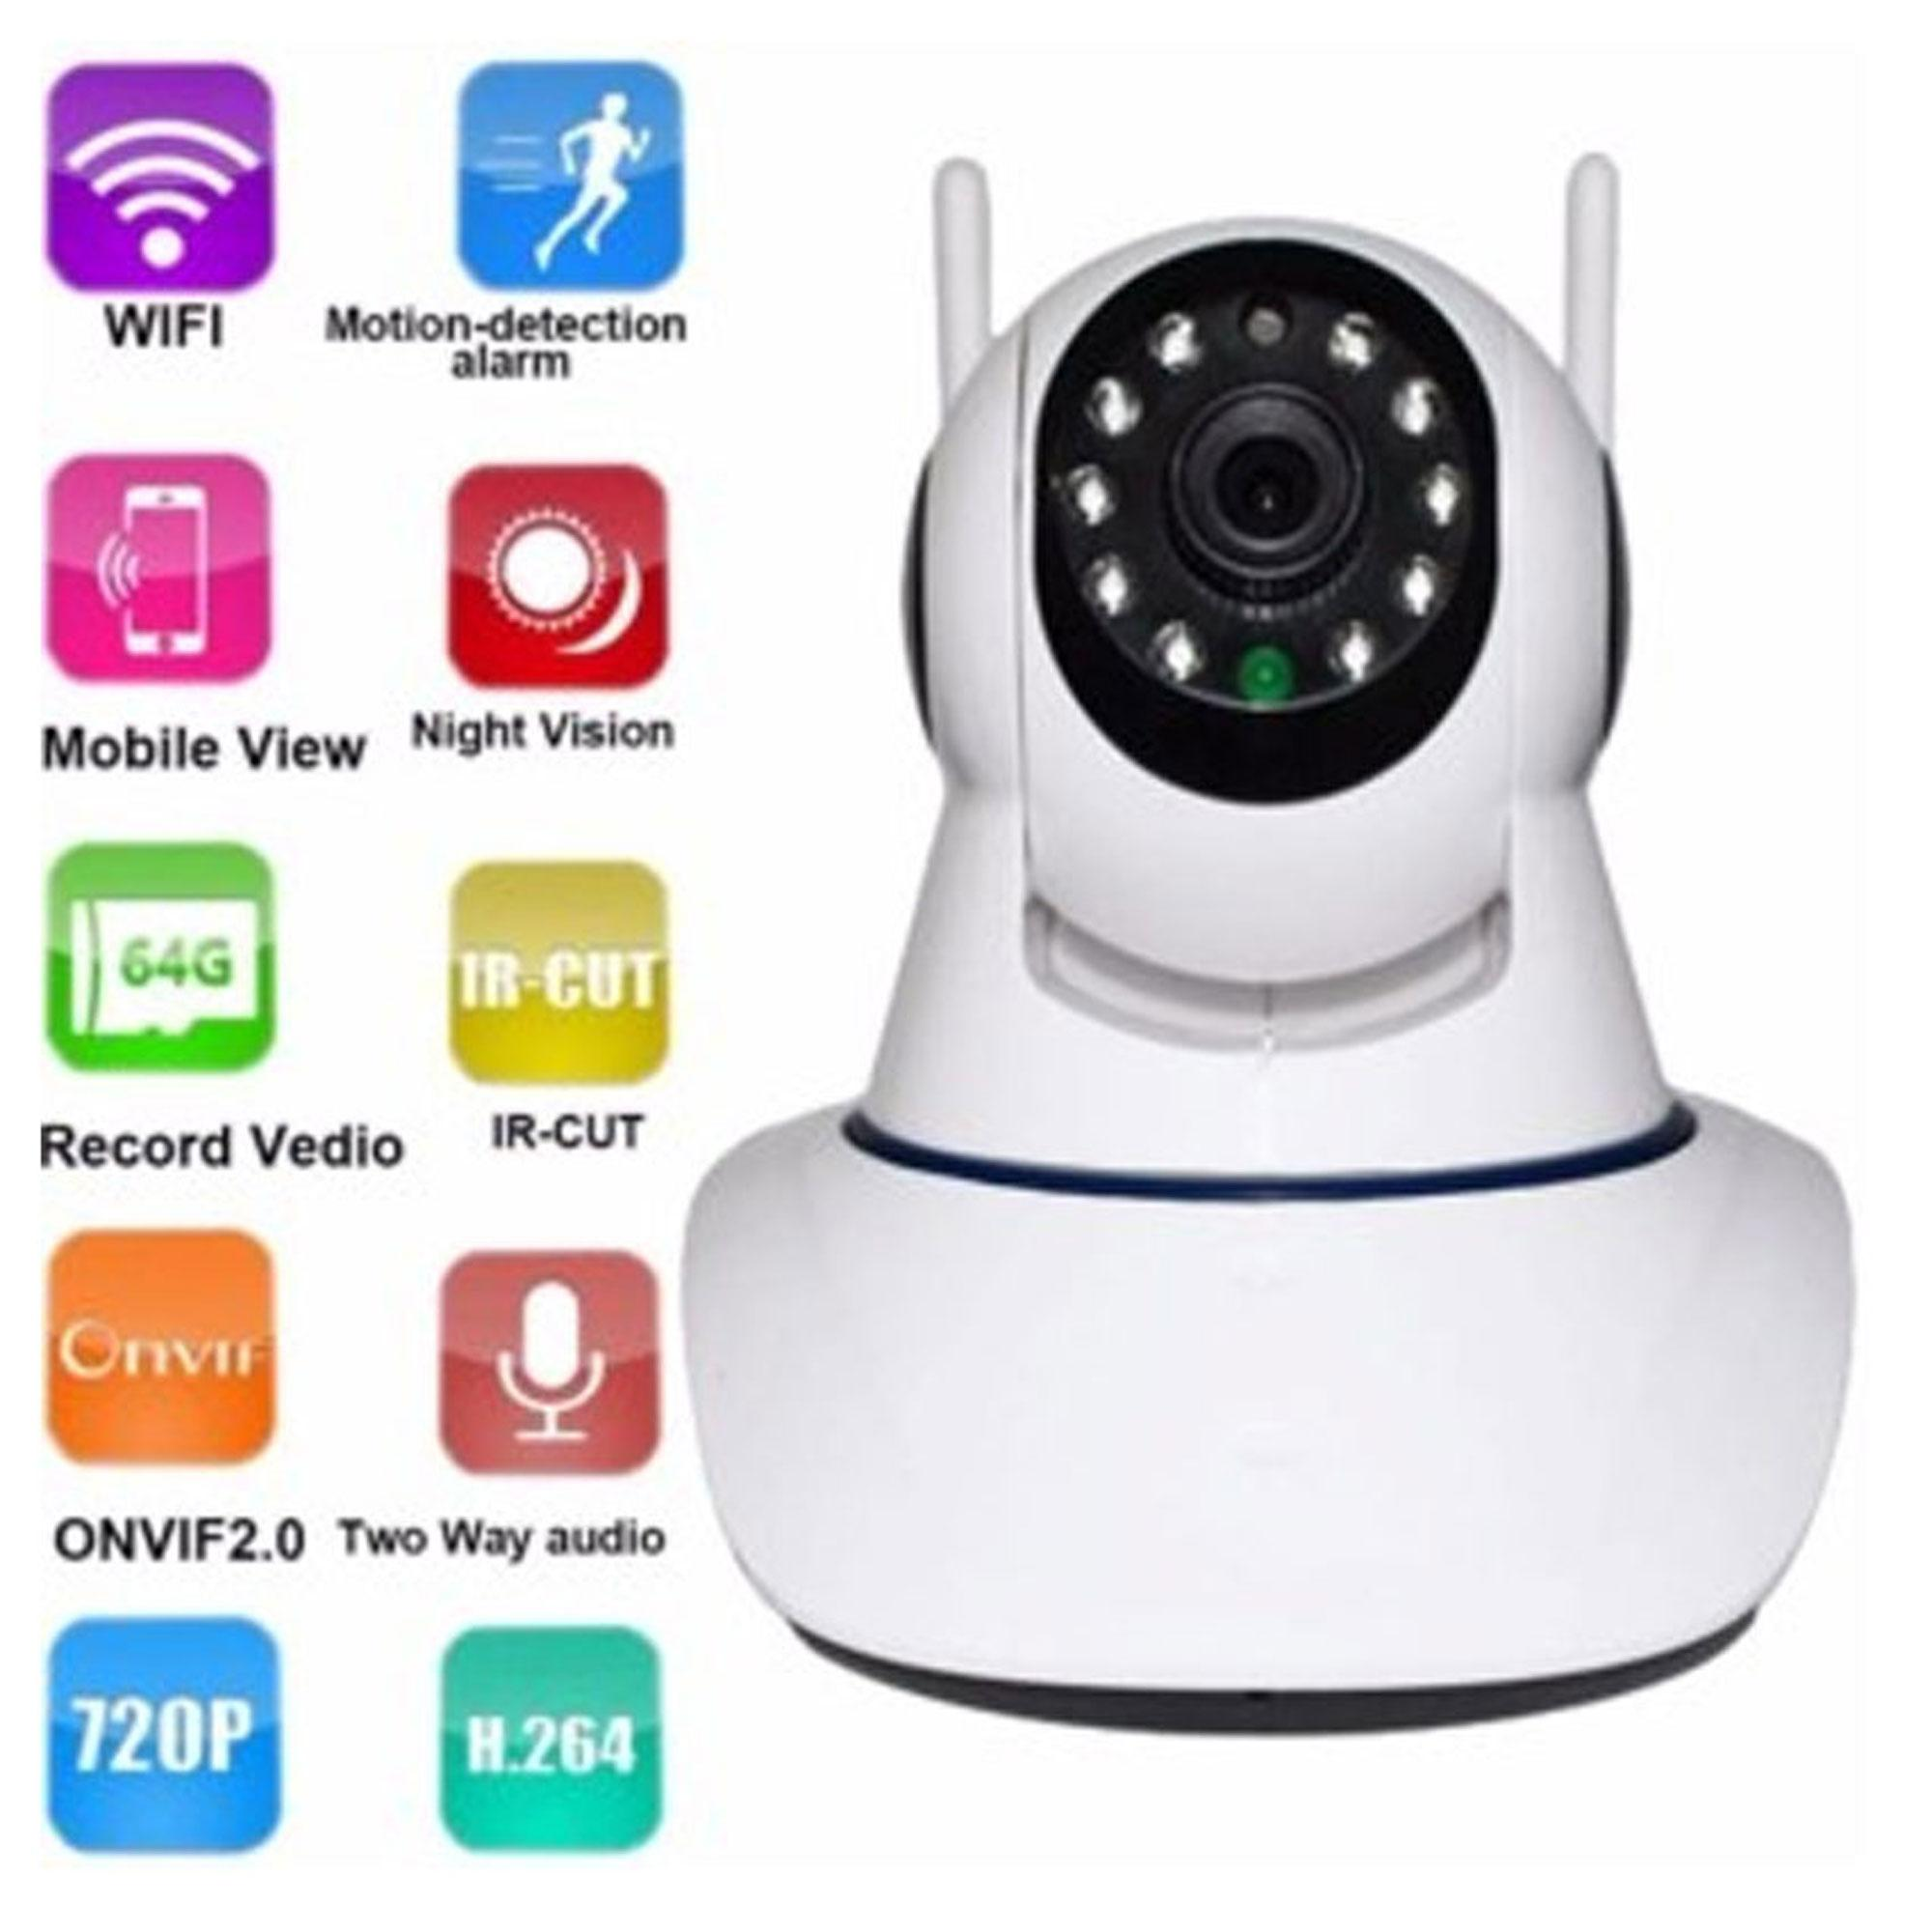 Wnc 01 Ip Cctv Wireless Network Camera Wifi Home Monitor Camera